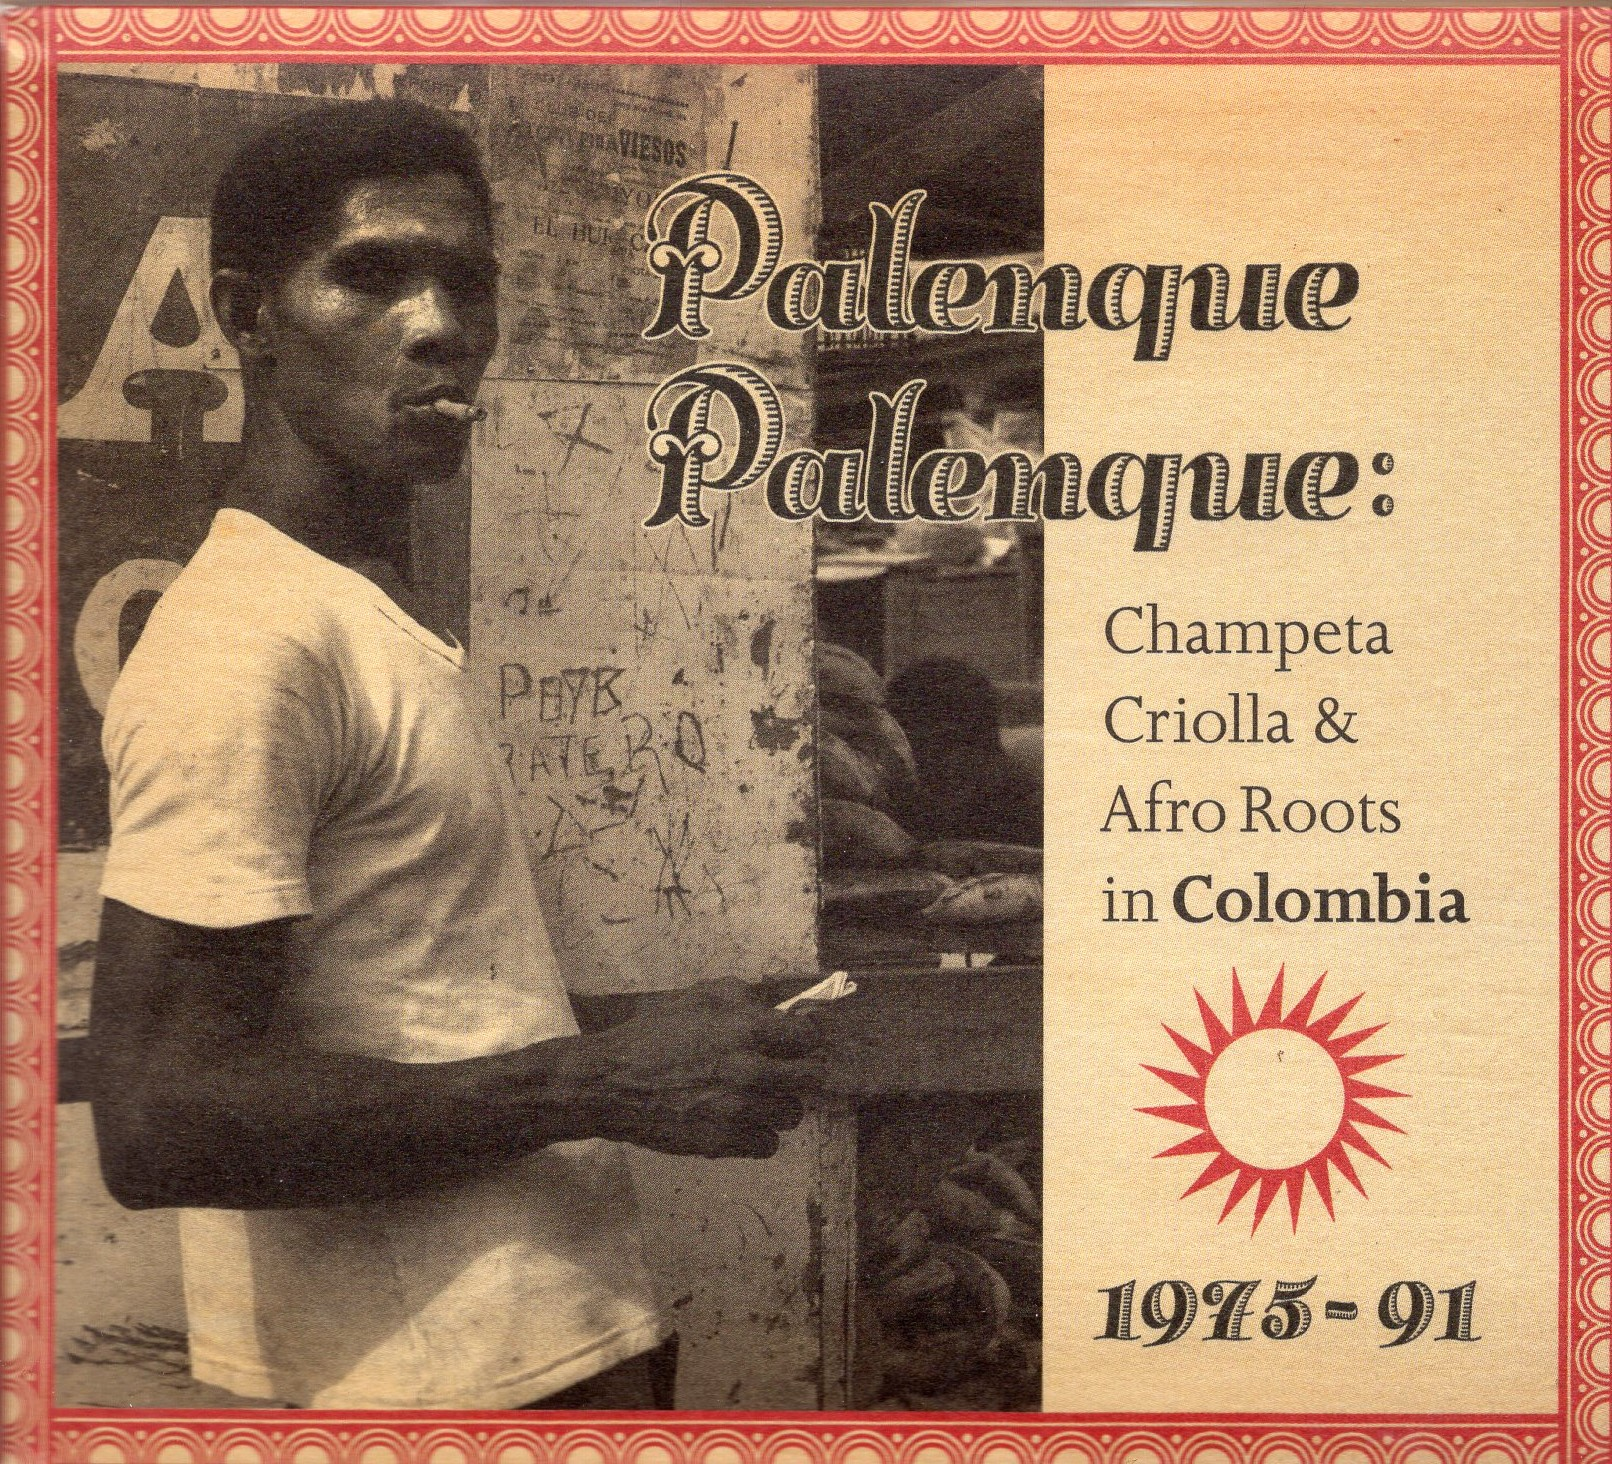 """Palenque Palenque: Champeta Criolla & Afro Roots in Colombia 1975-91"""